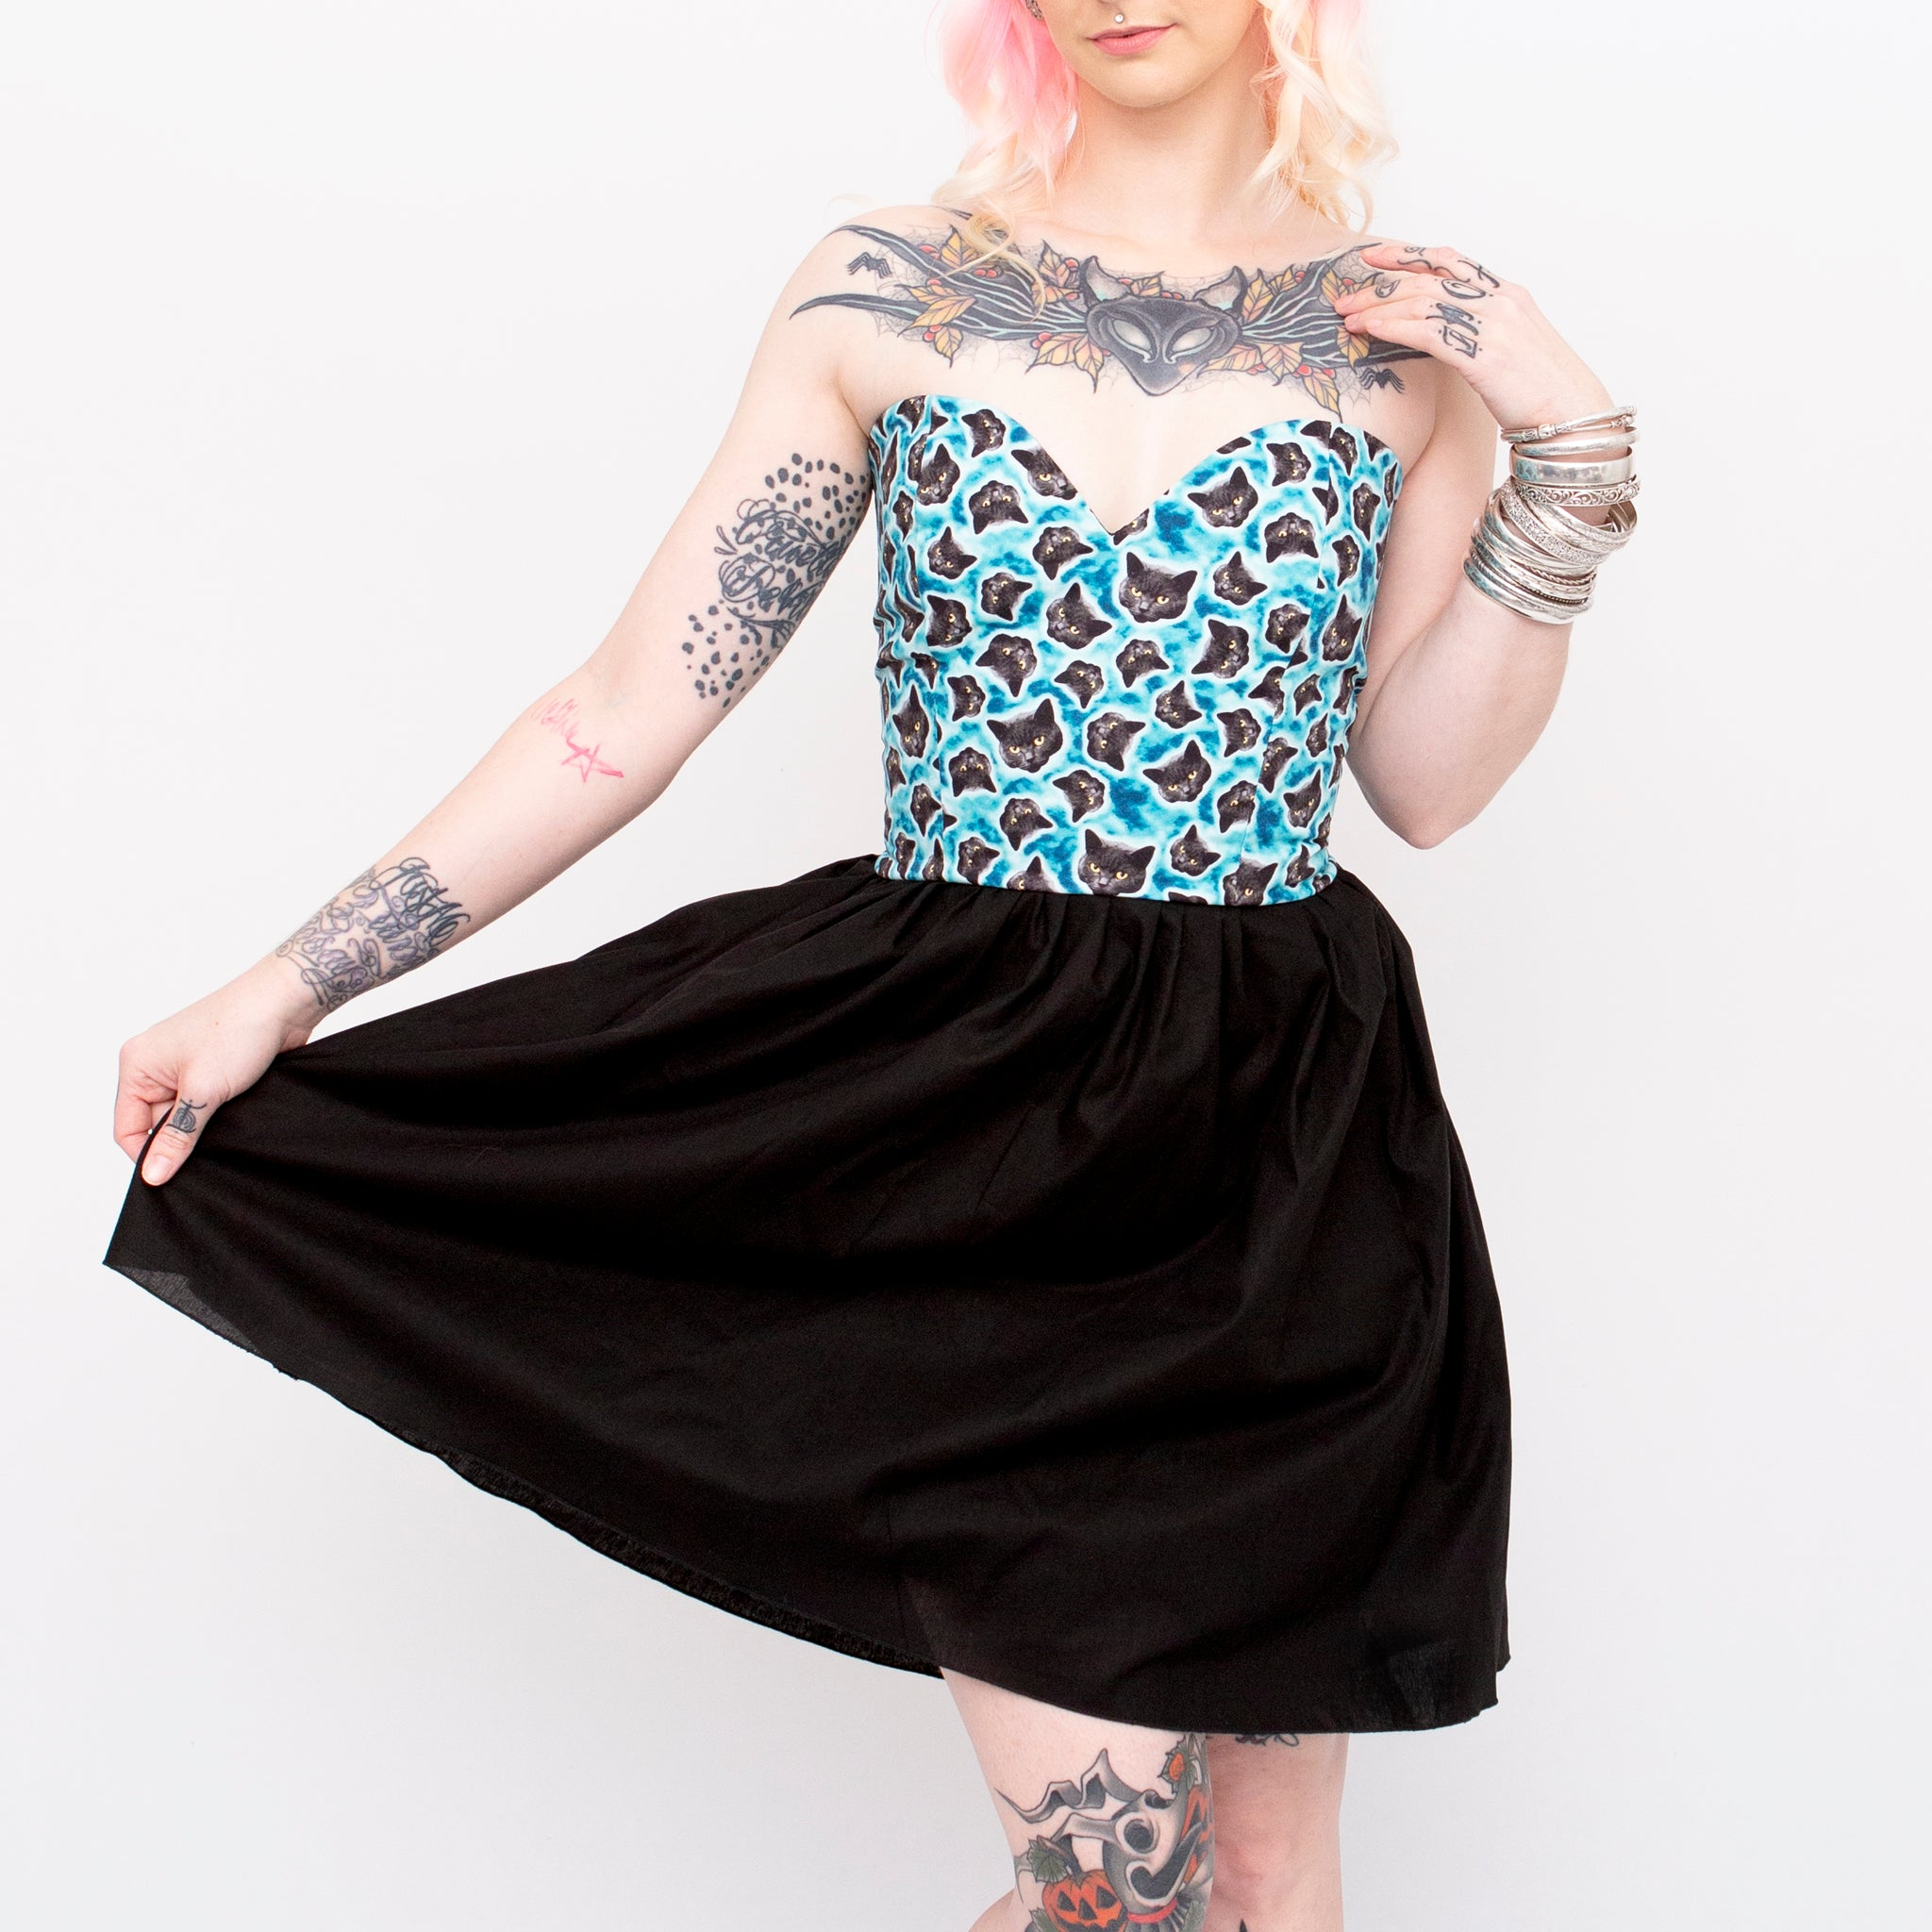 Glow in the Dark Cat Half Print Sweetheart Dress